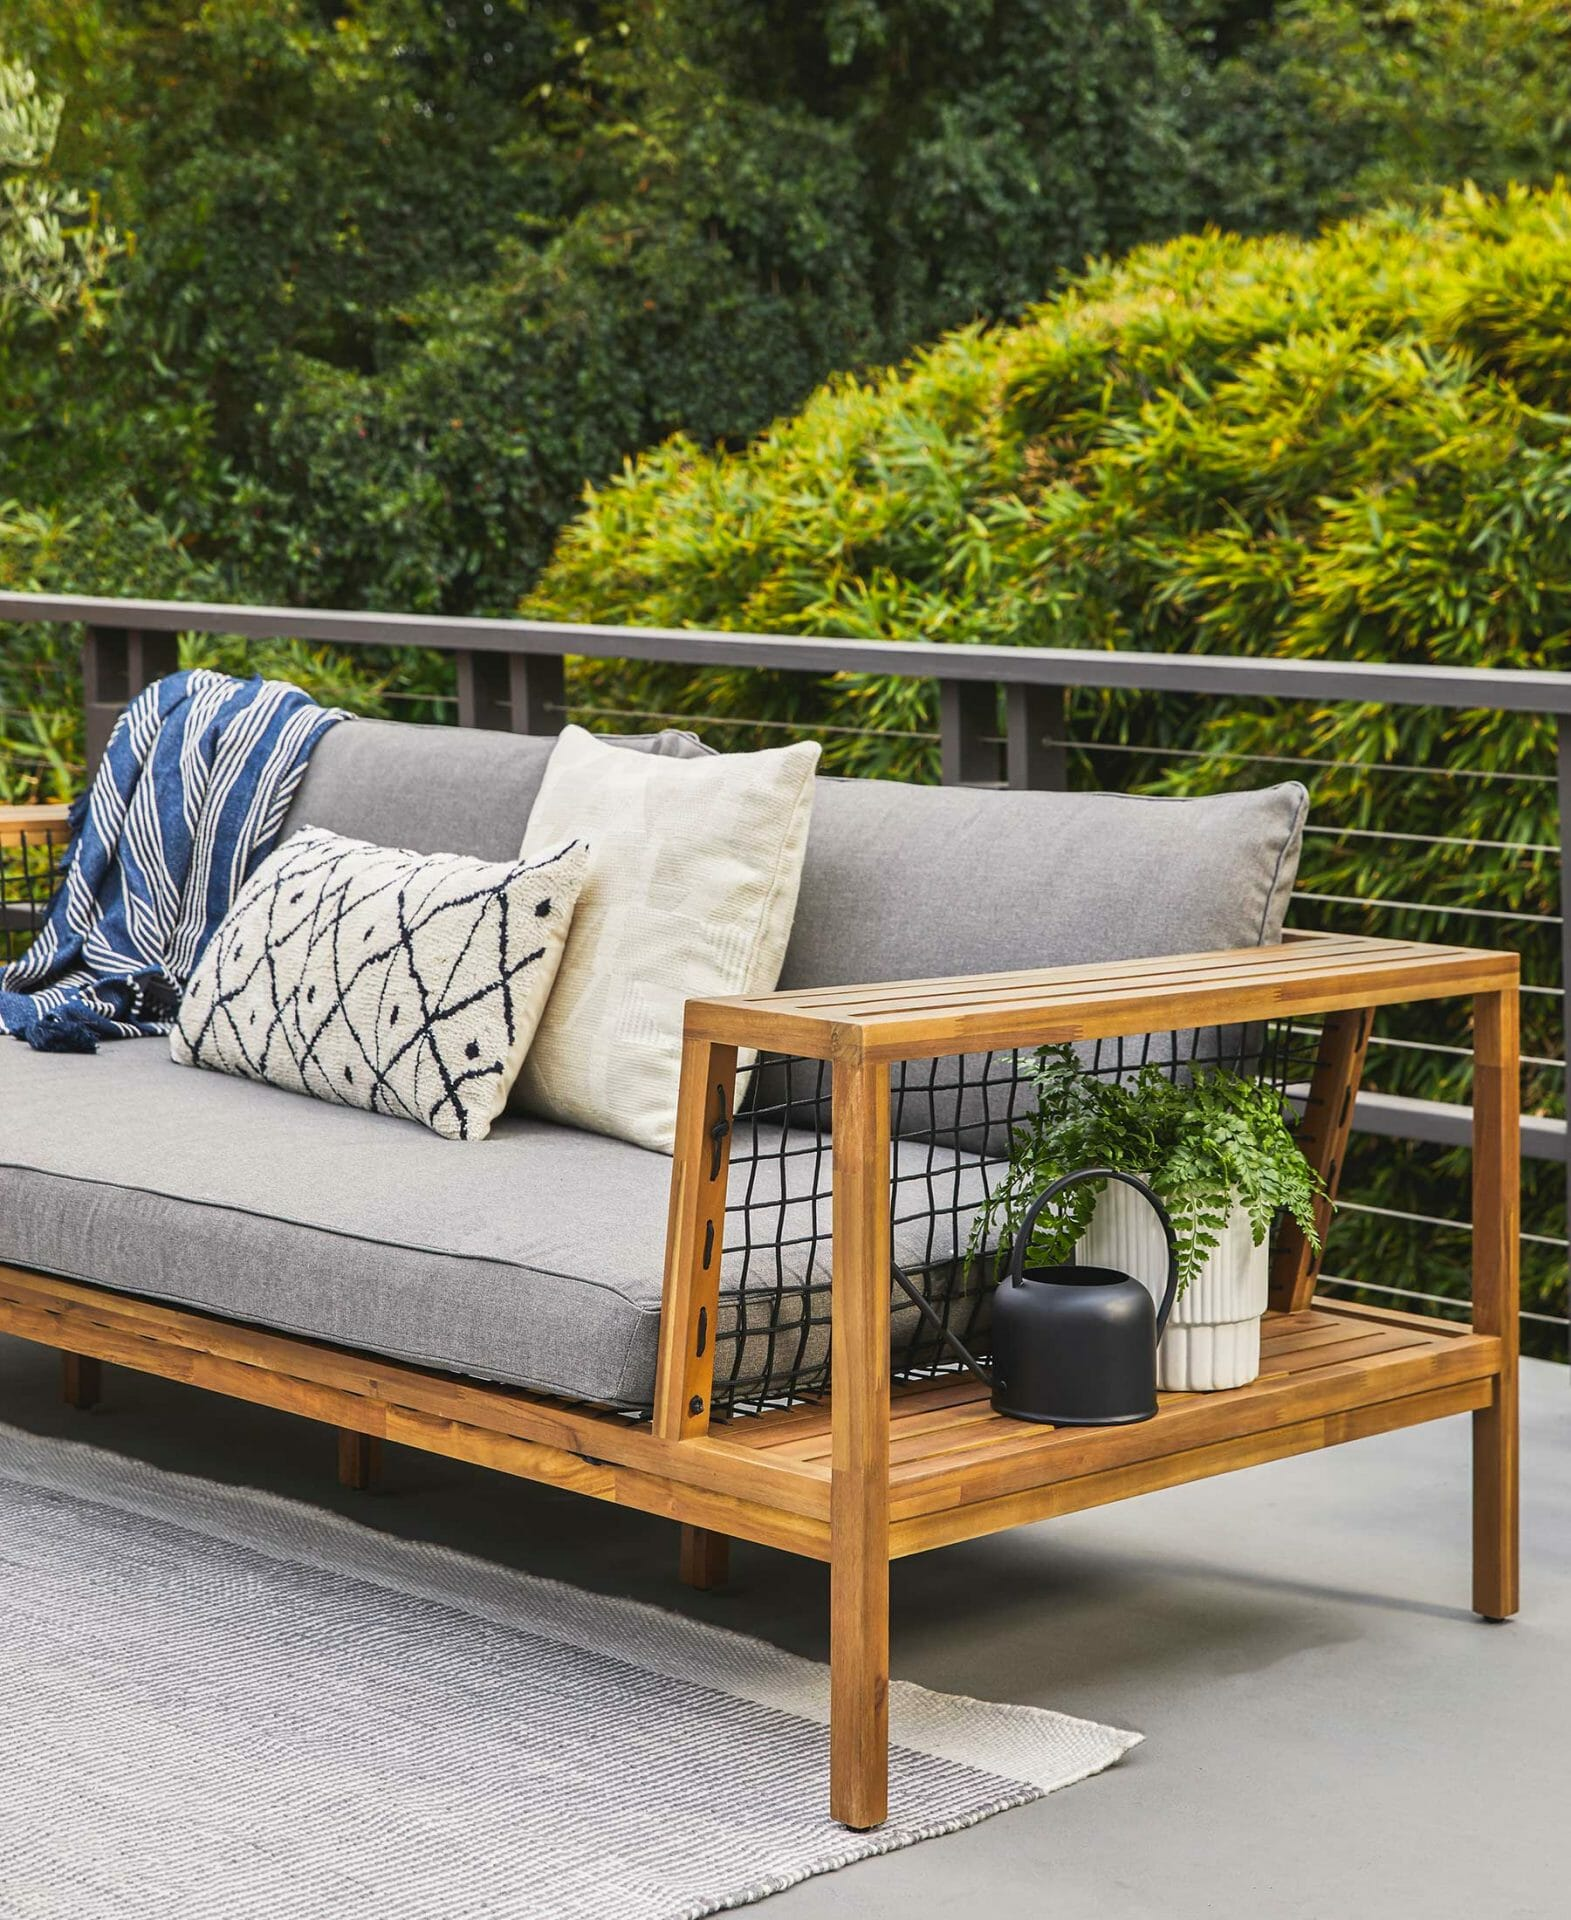 Article's Callais sofa on an outdoor deck